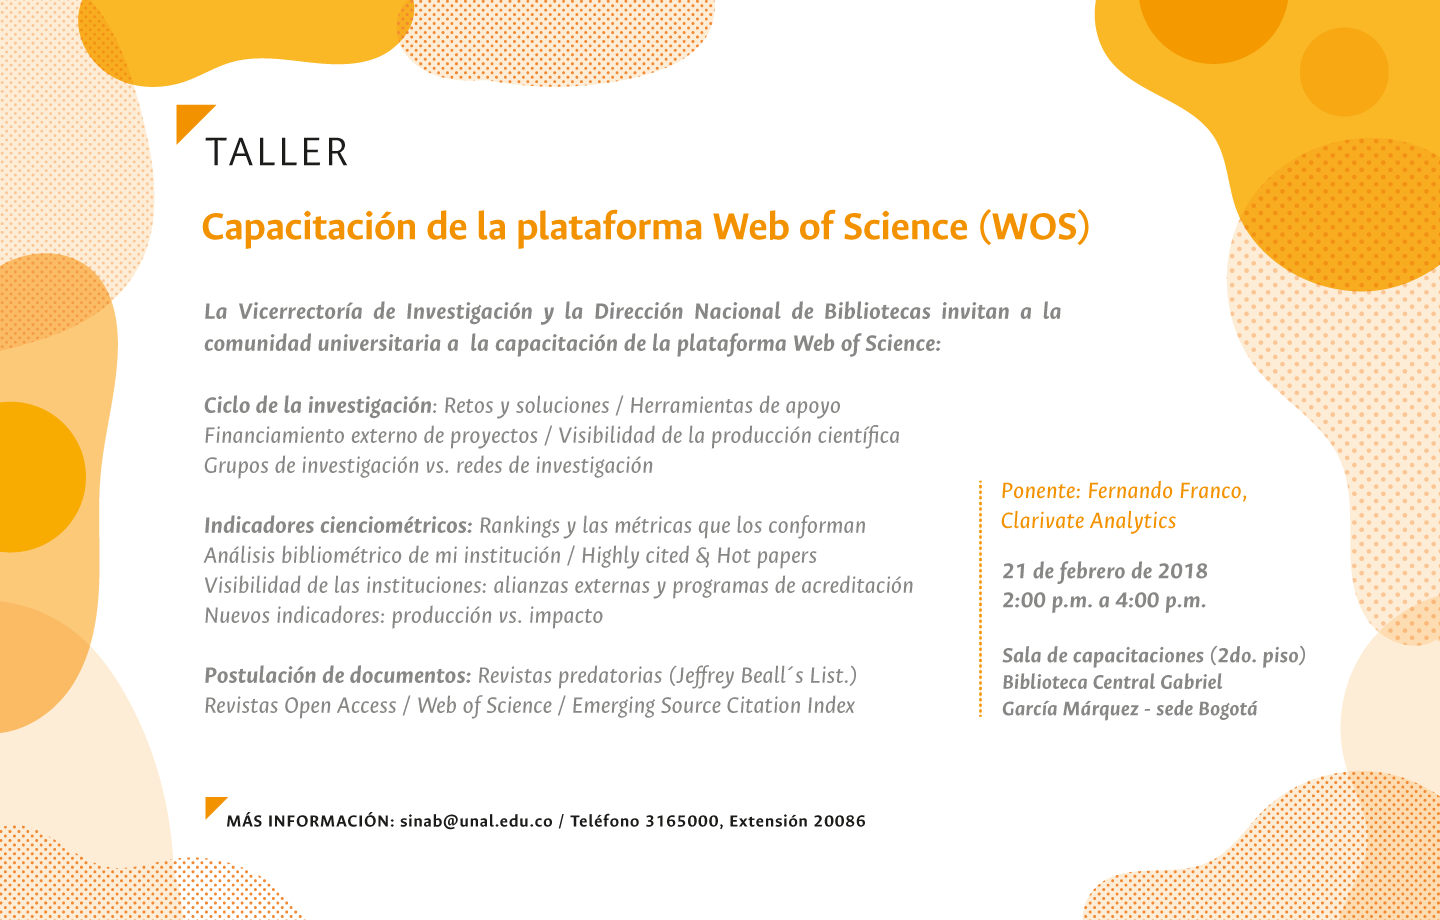 Taller «Directrices y desafíos del ciclo de la investigación» (Clarivate/Web of Science)